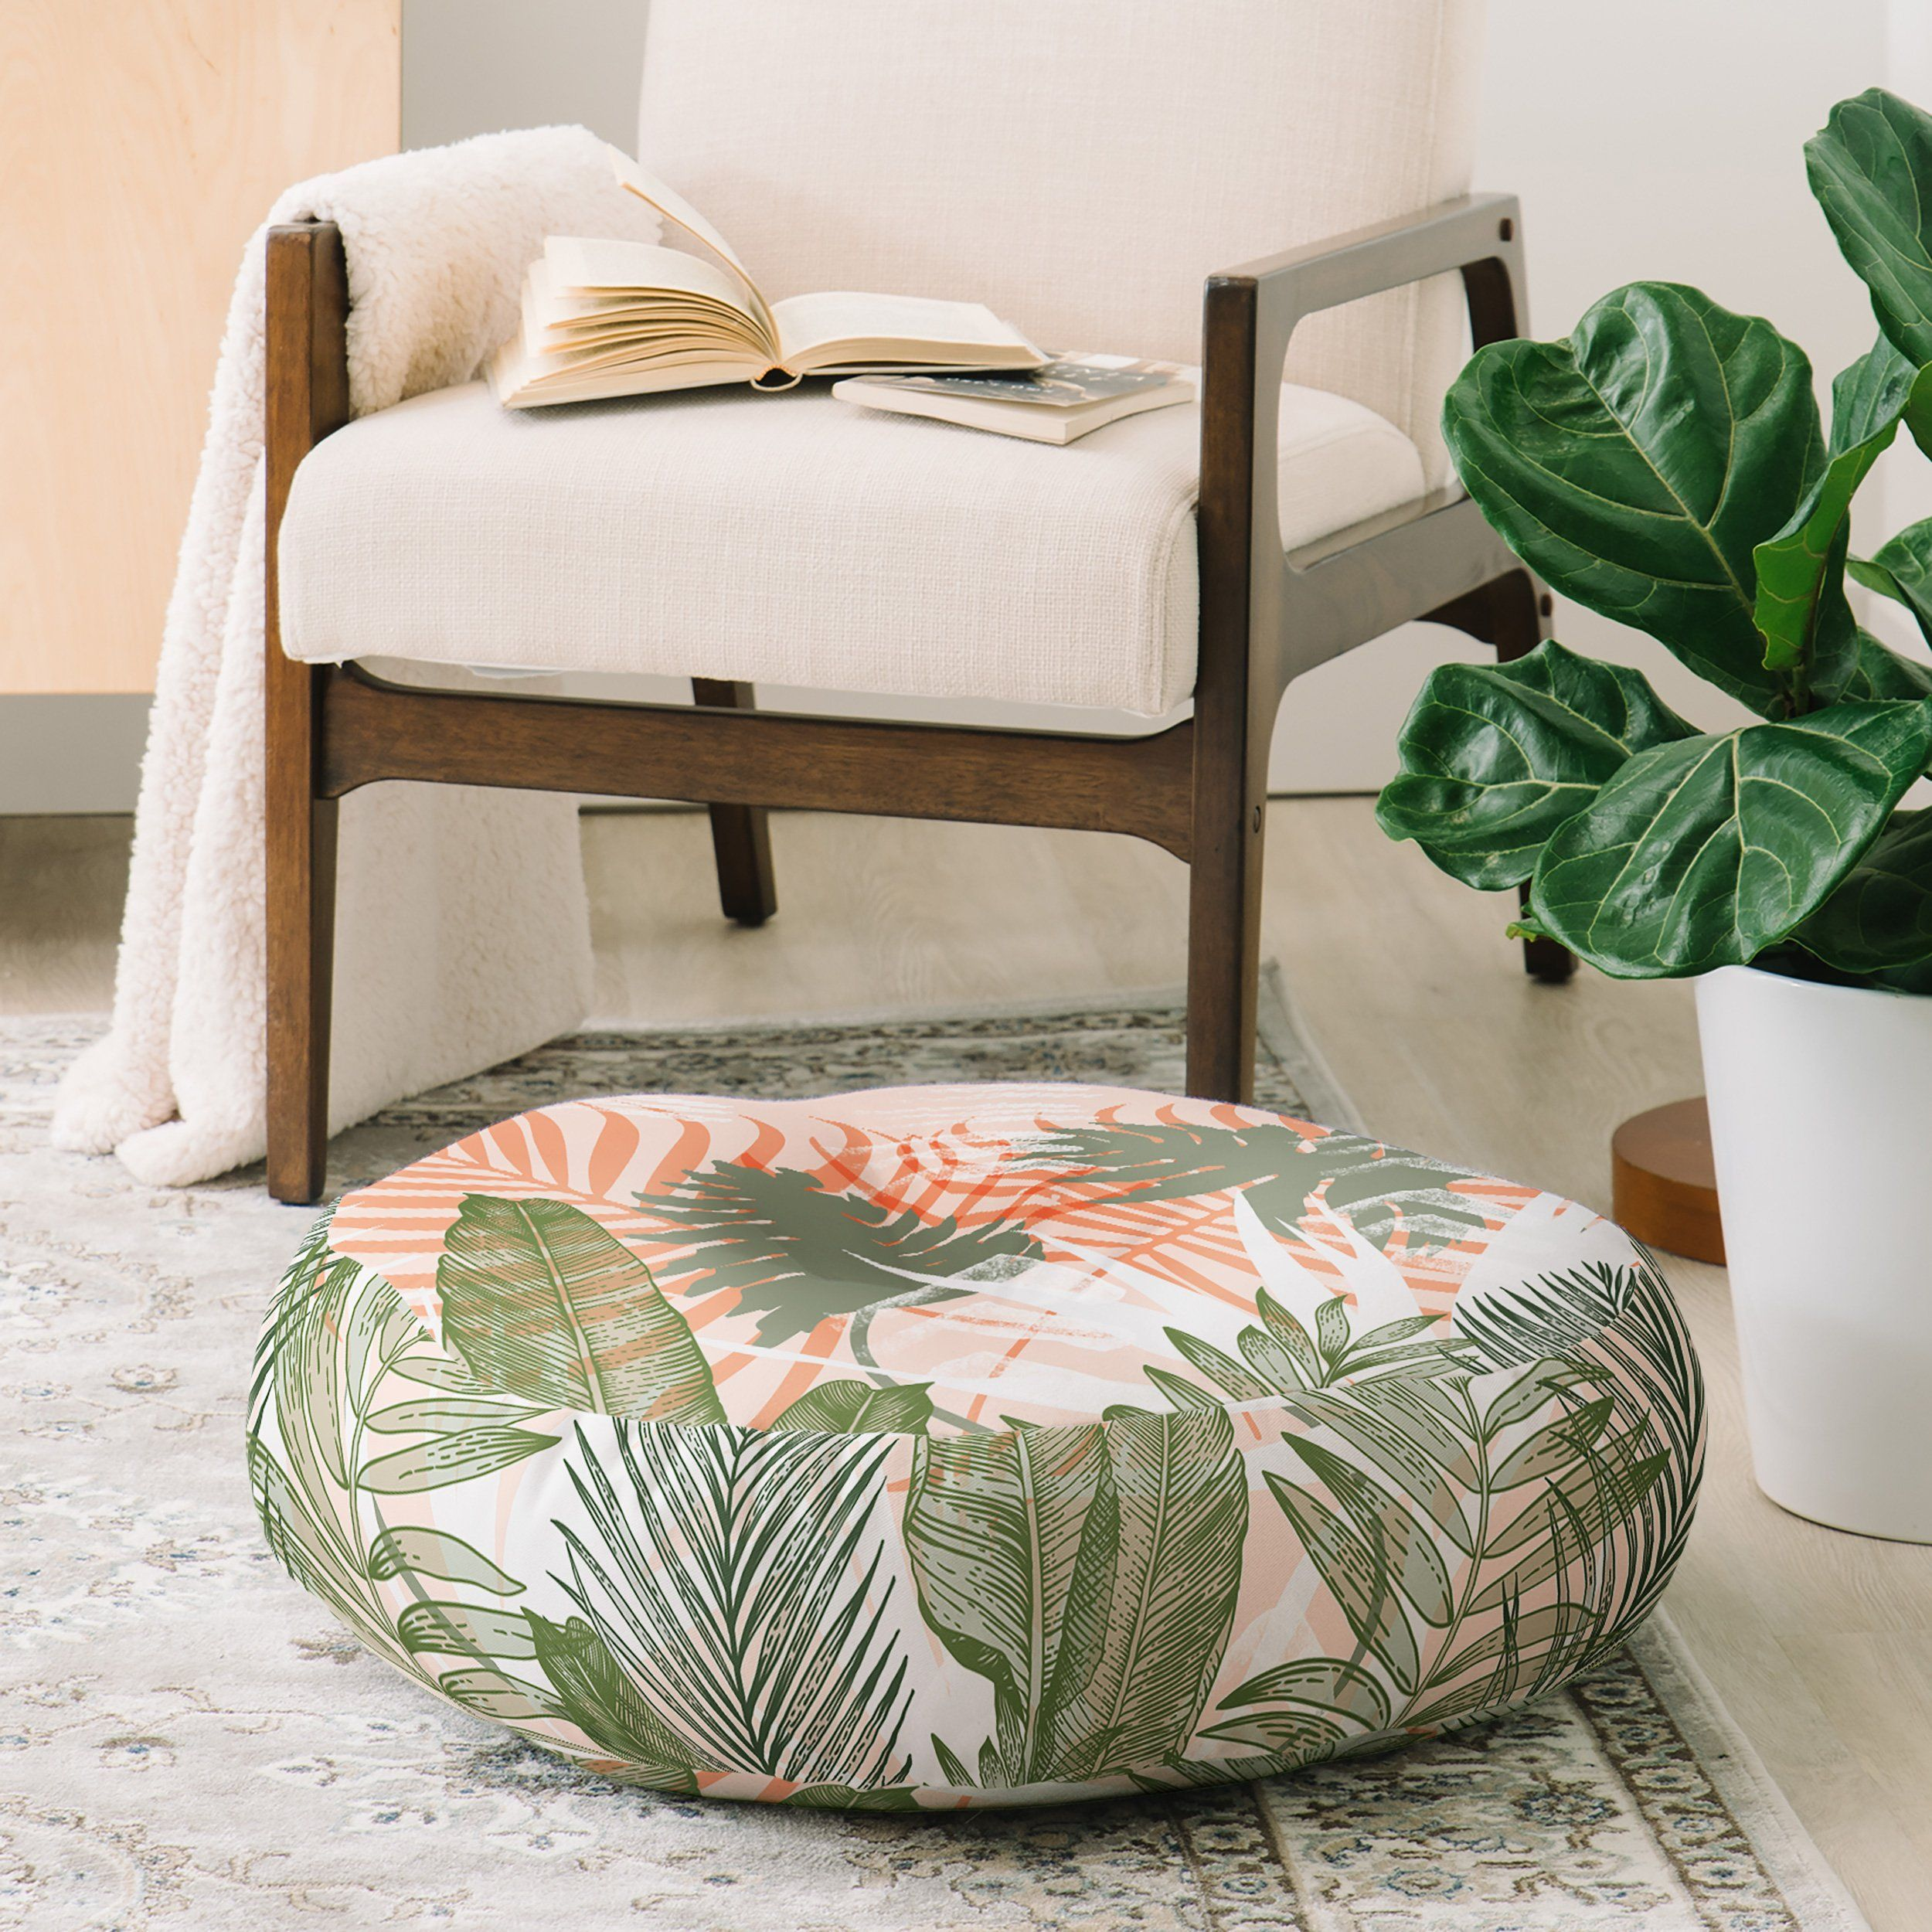 Abstract Tropical Plants Pastel Floor Pillow Round Marta Barragan Camarasa